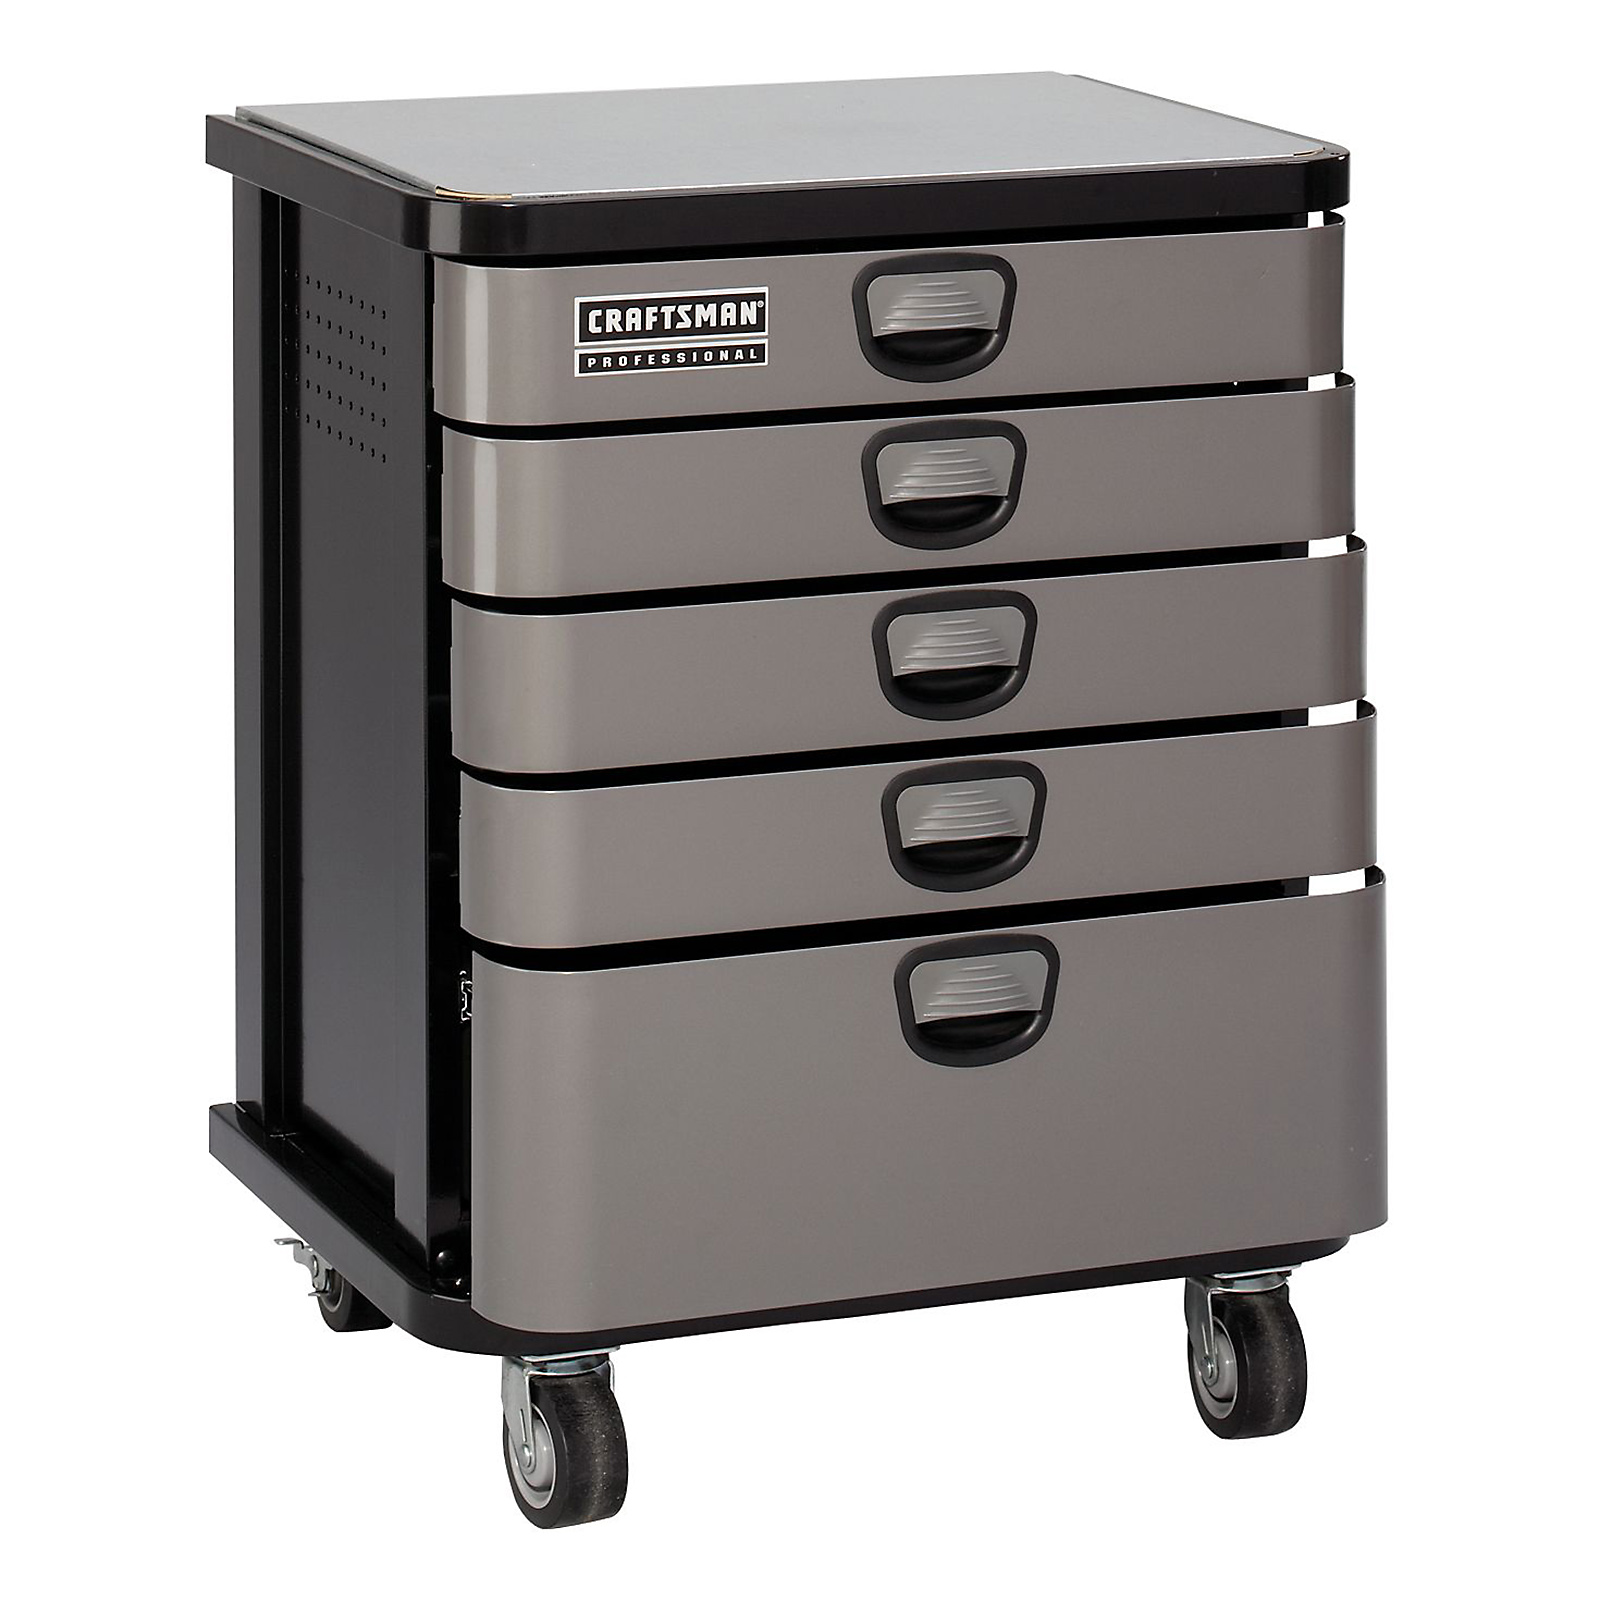 Craftsman 5-Drawer Mobile Cabinet - Platinum